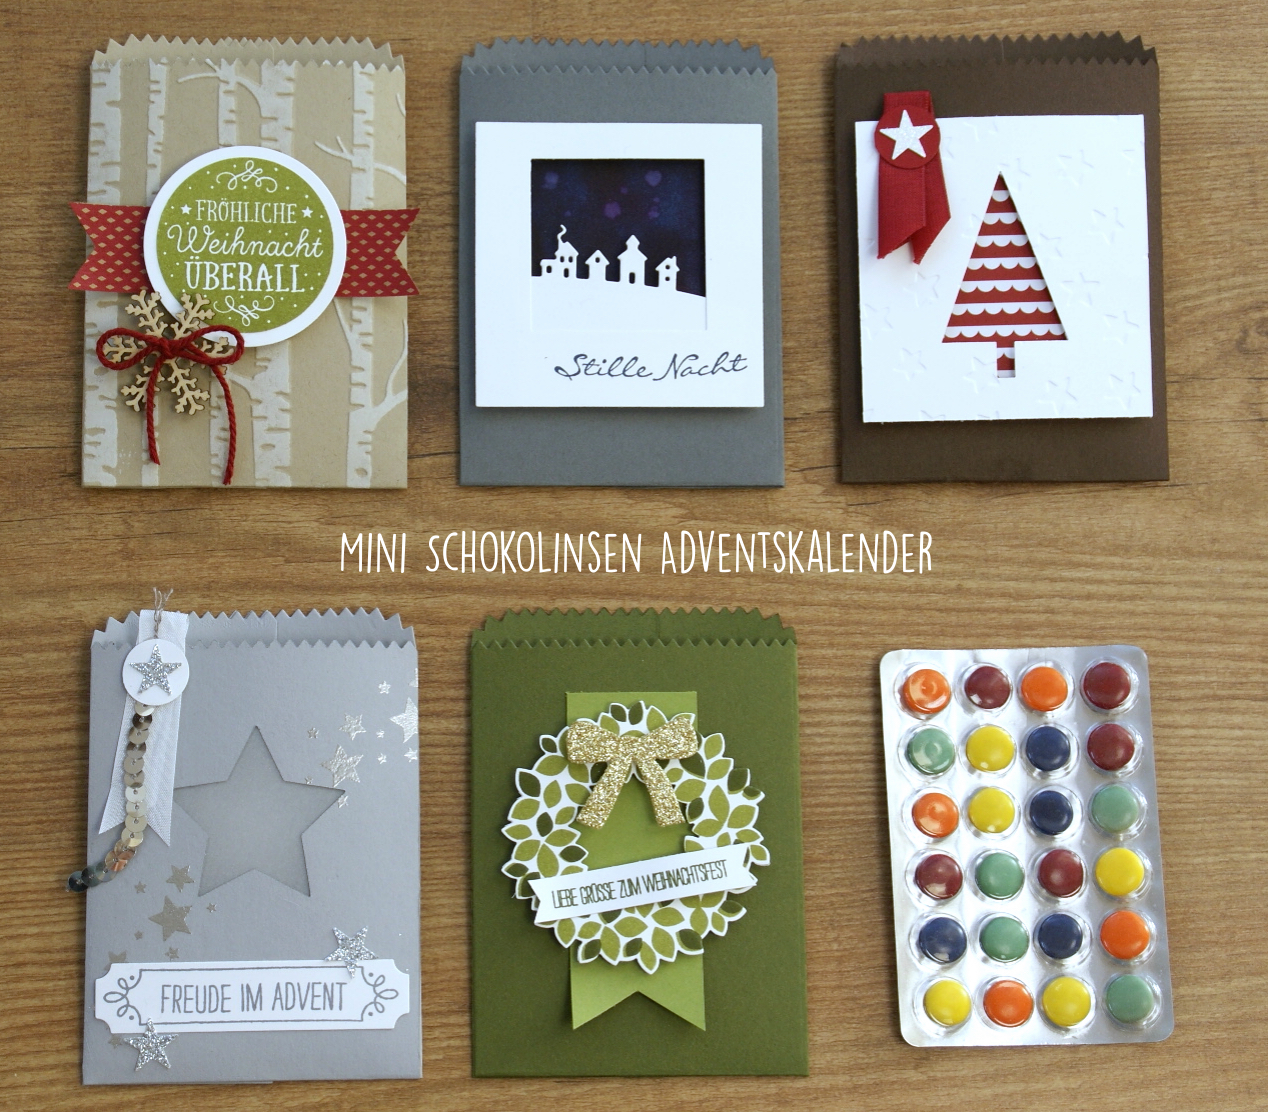 Mini Adventskalender alle